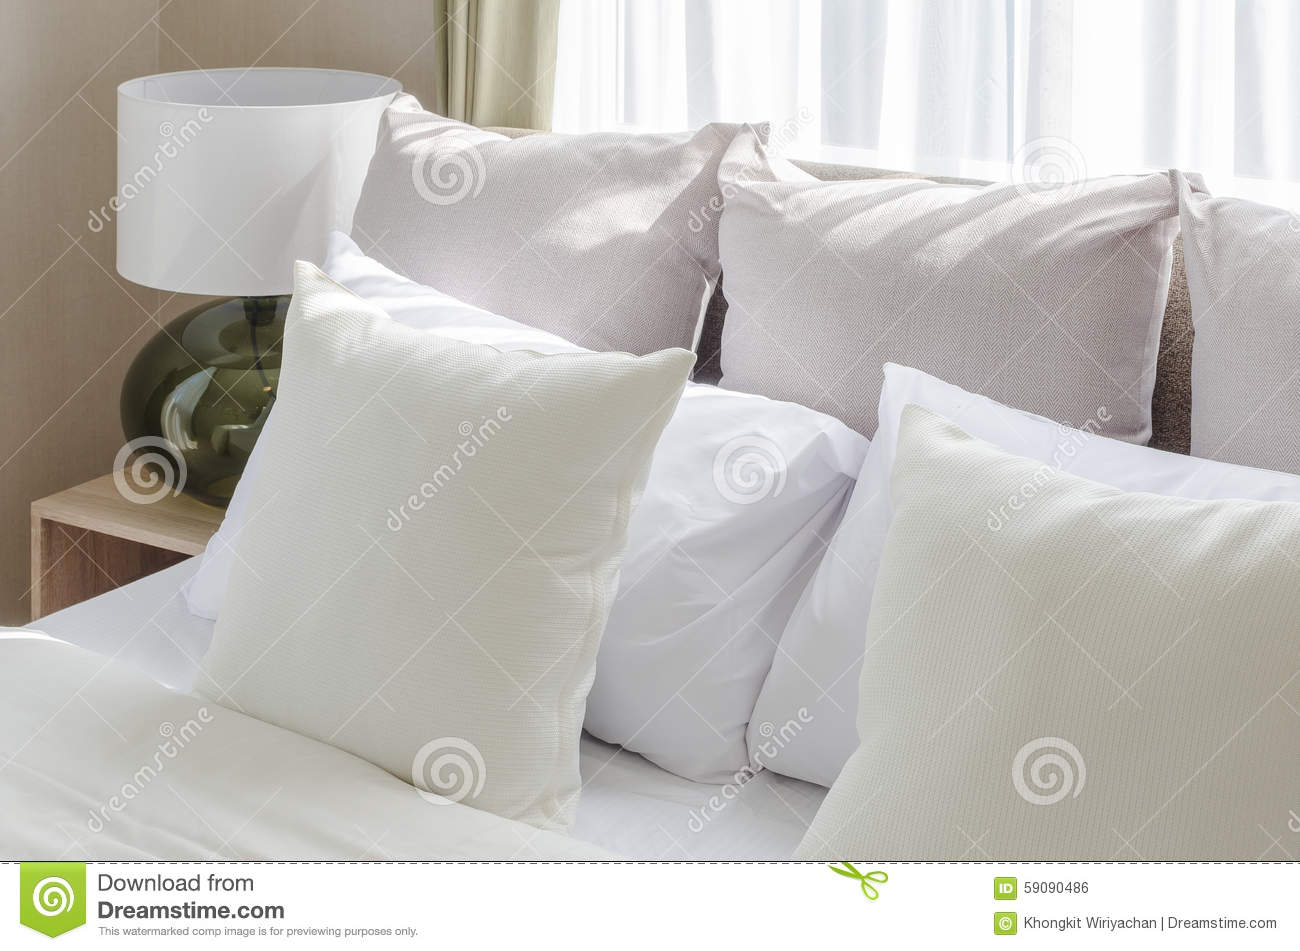 White pillows on bed in modern bedroom